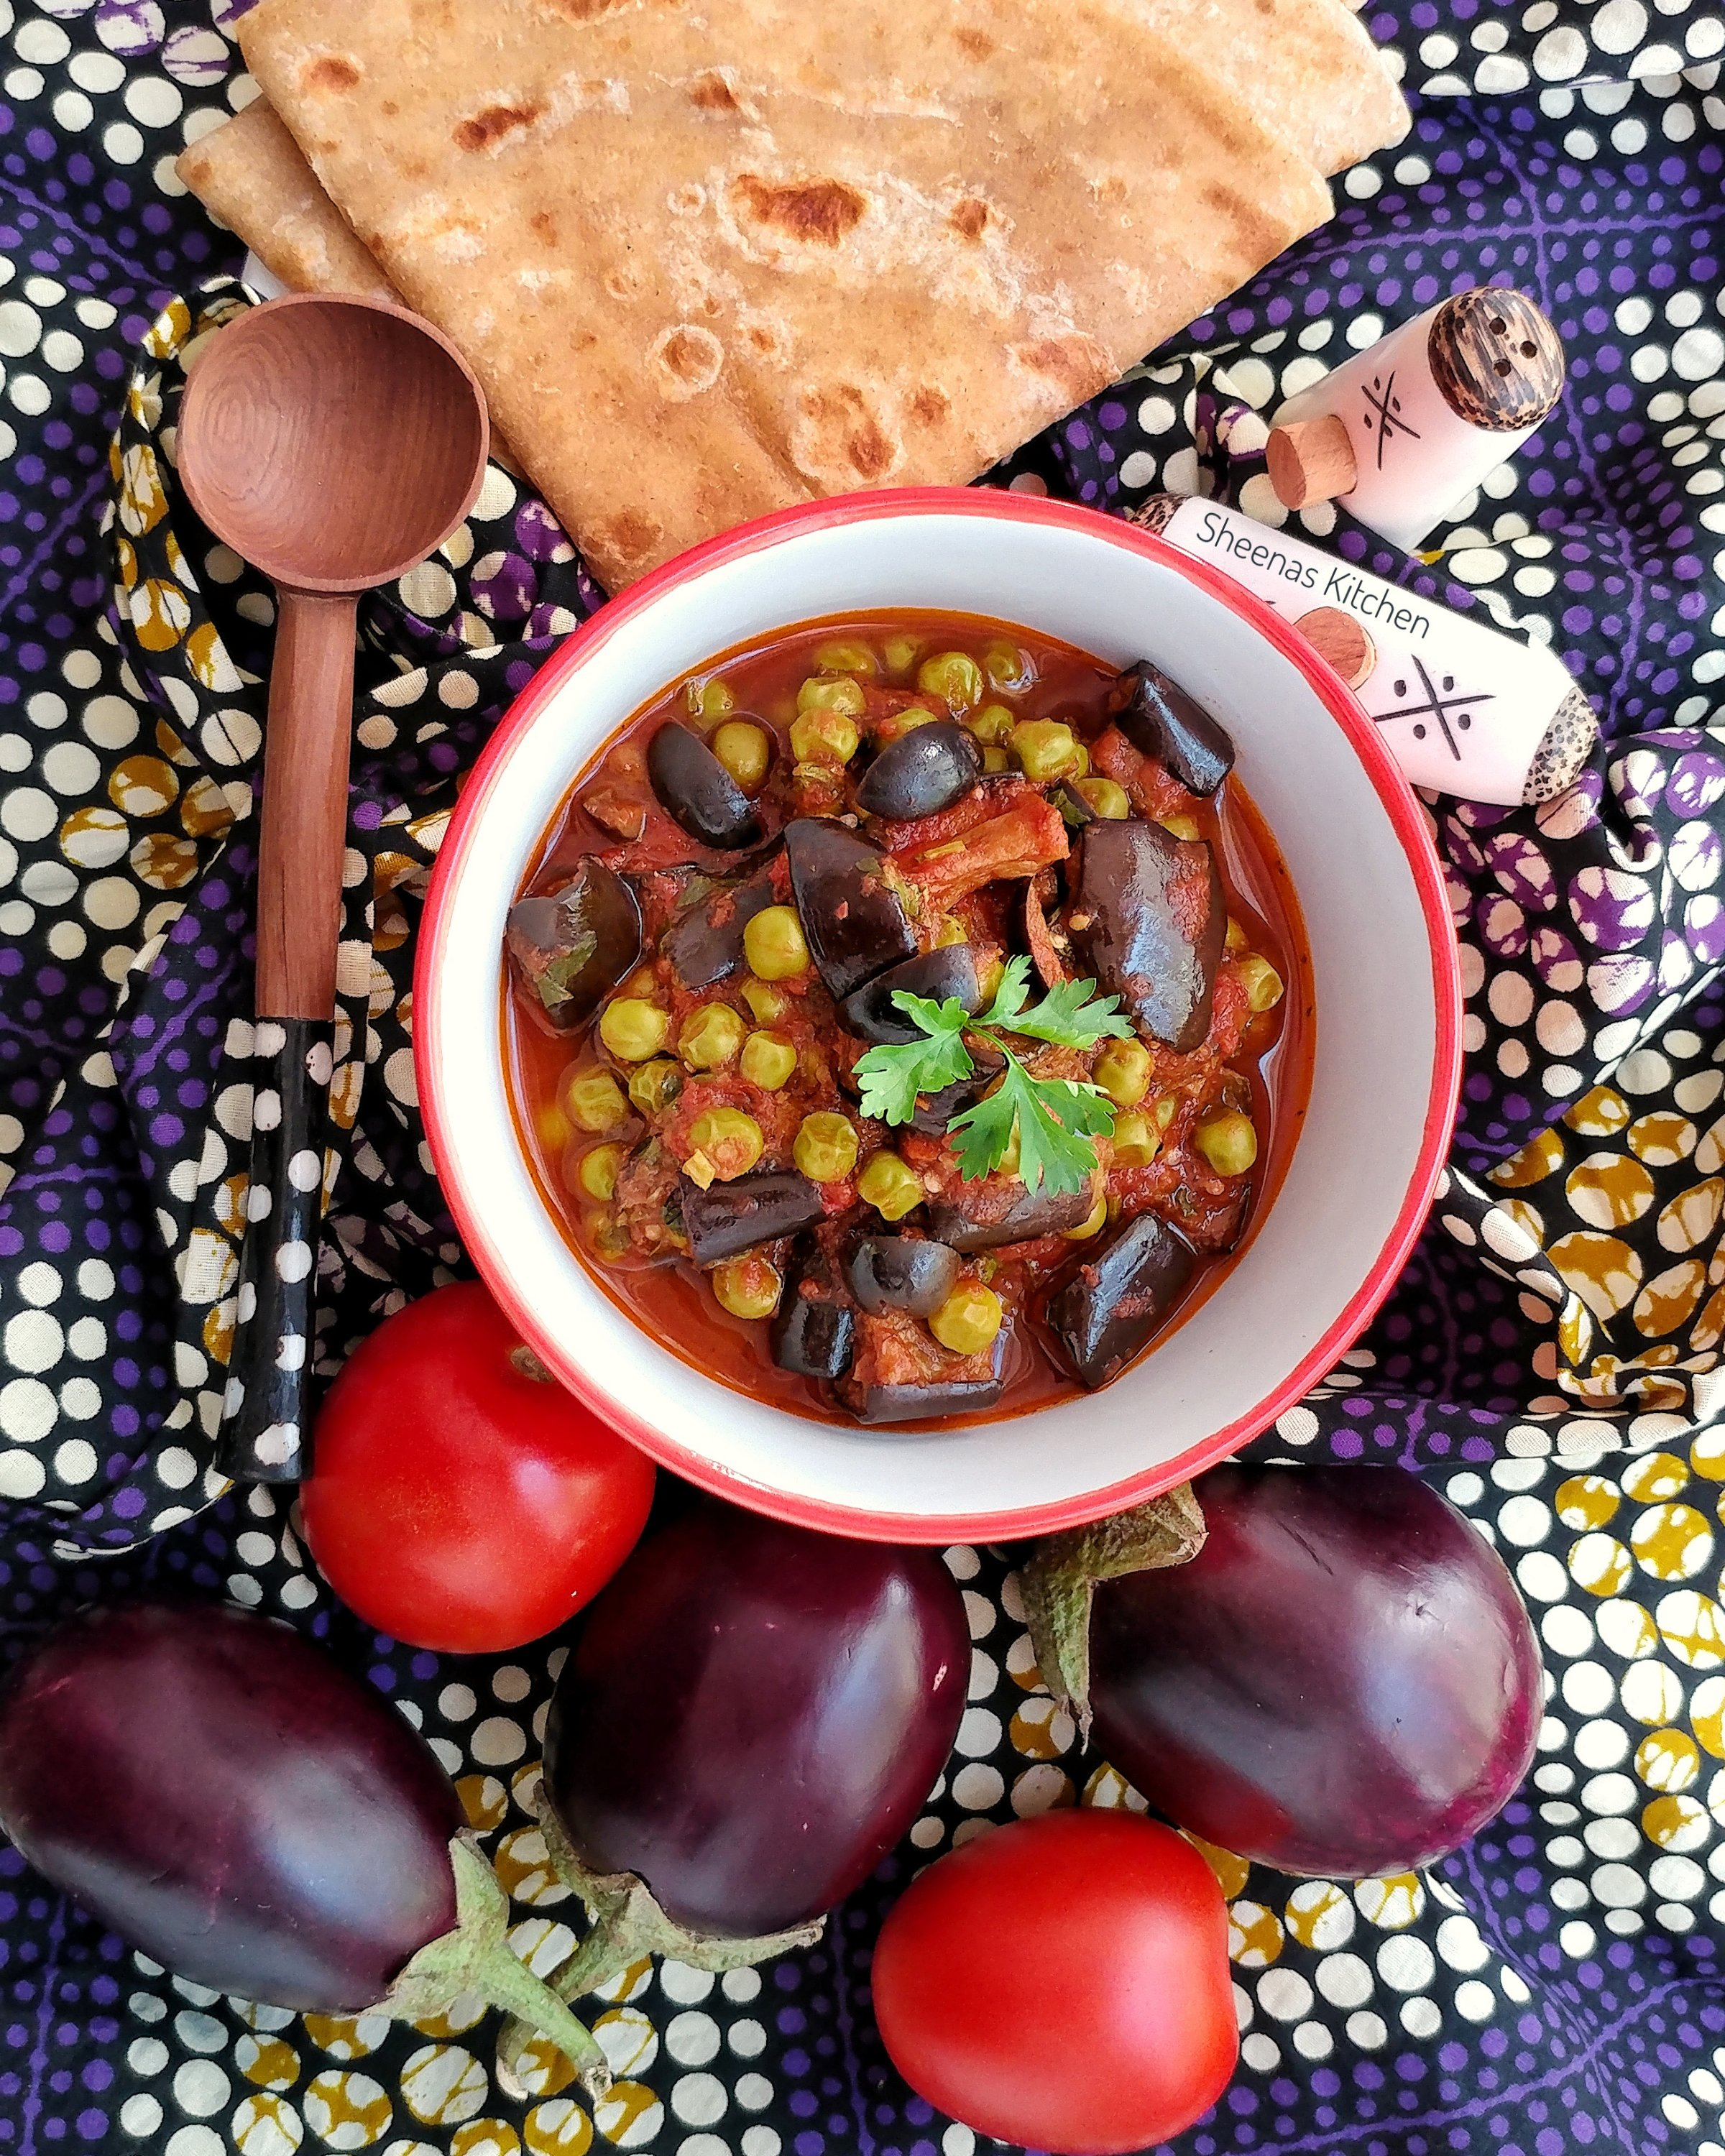 Roasted Eggplant in tomato stew-sheenas kitchen